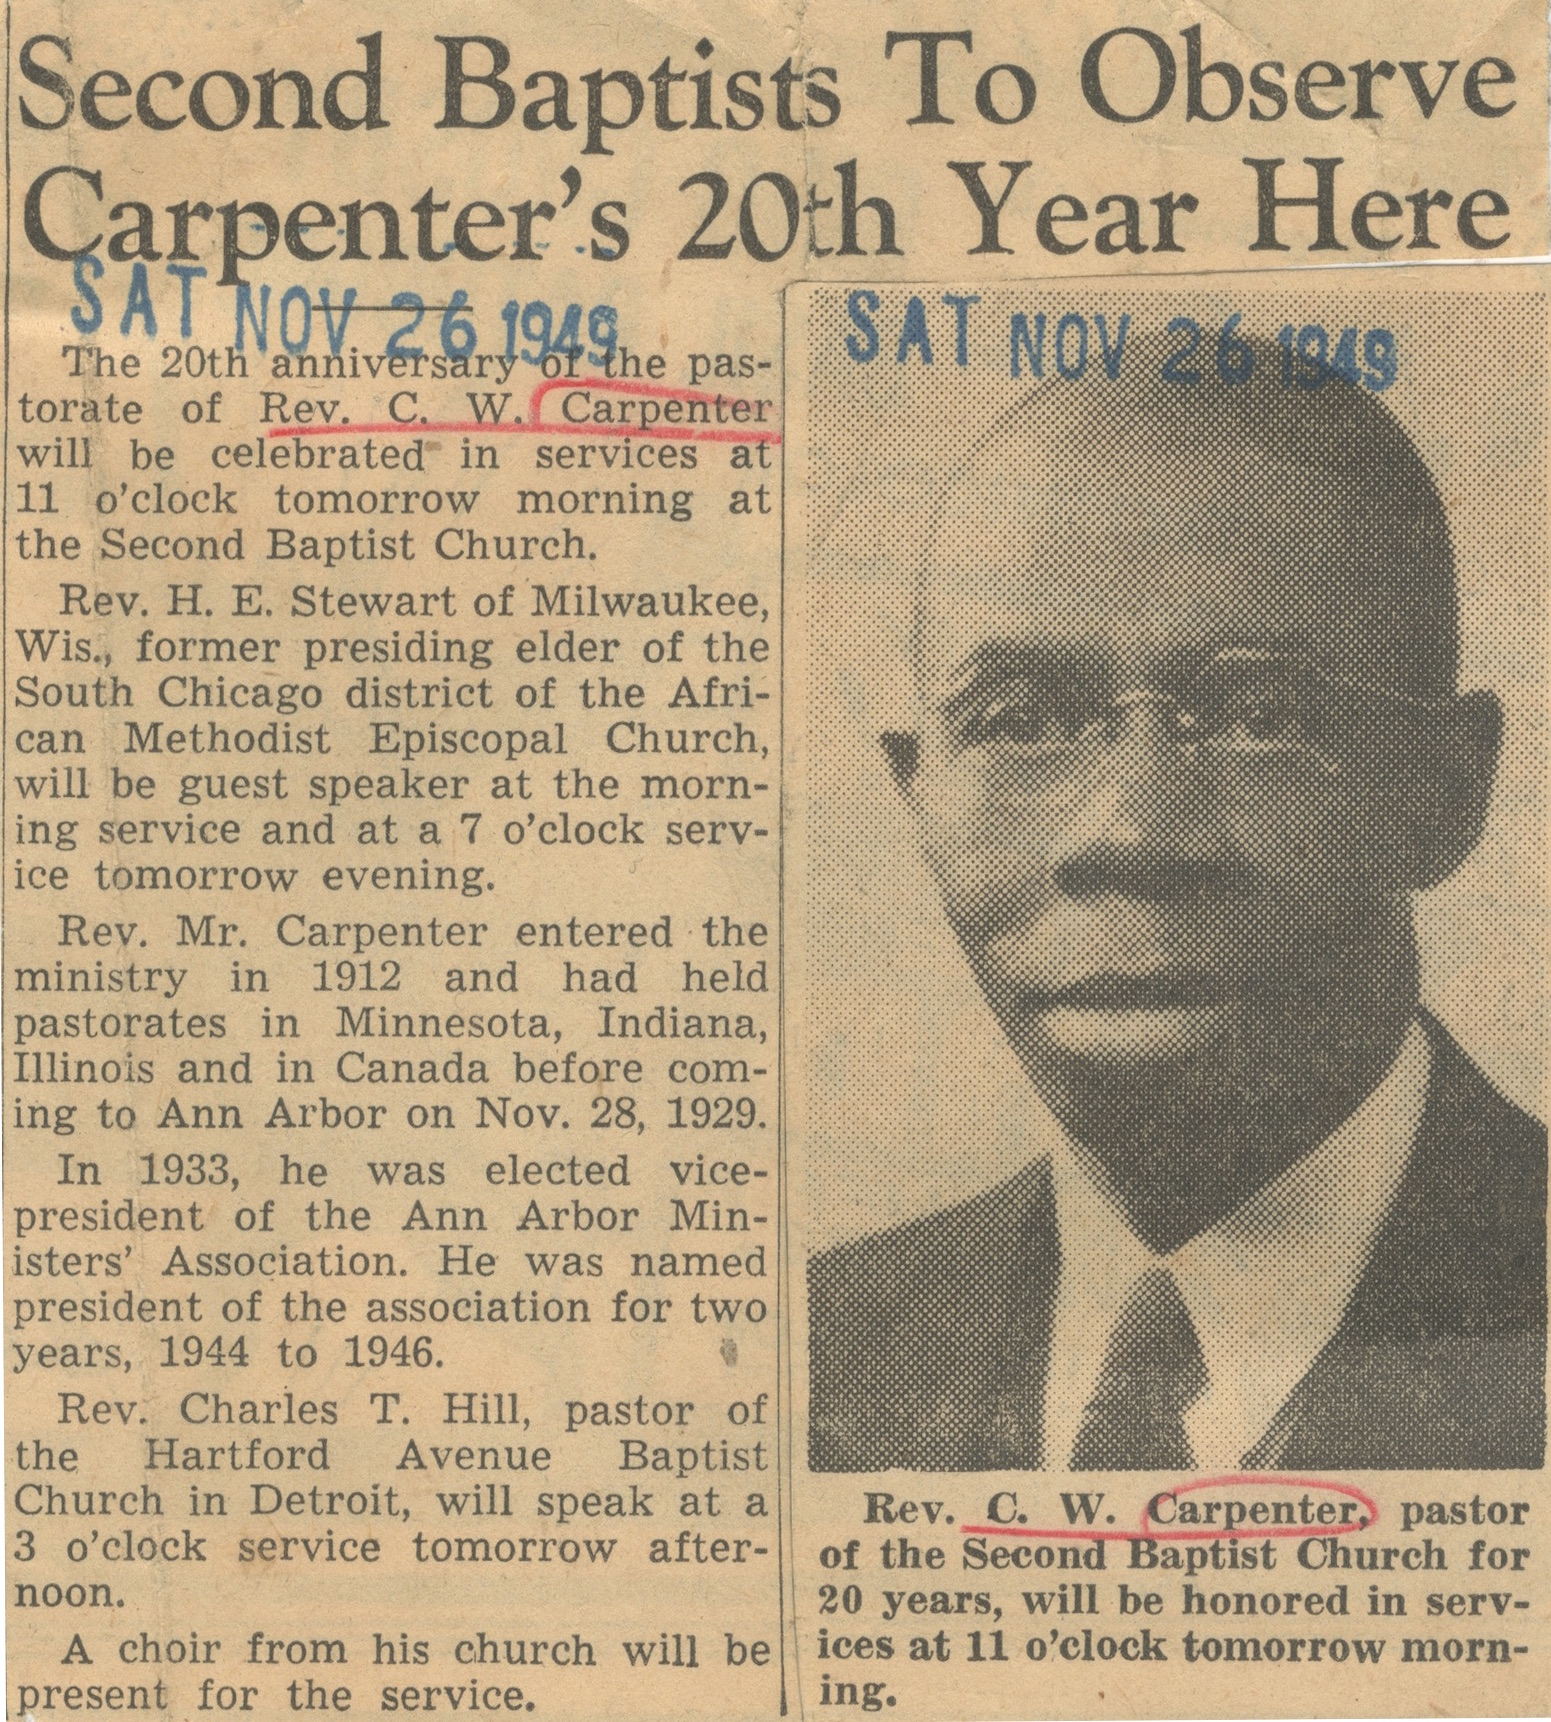 Second Baptists To Observe Carpenter's 20th Year Here image